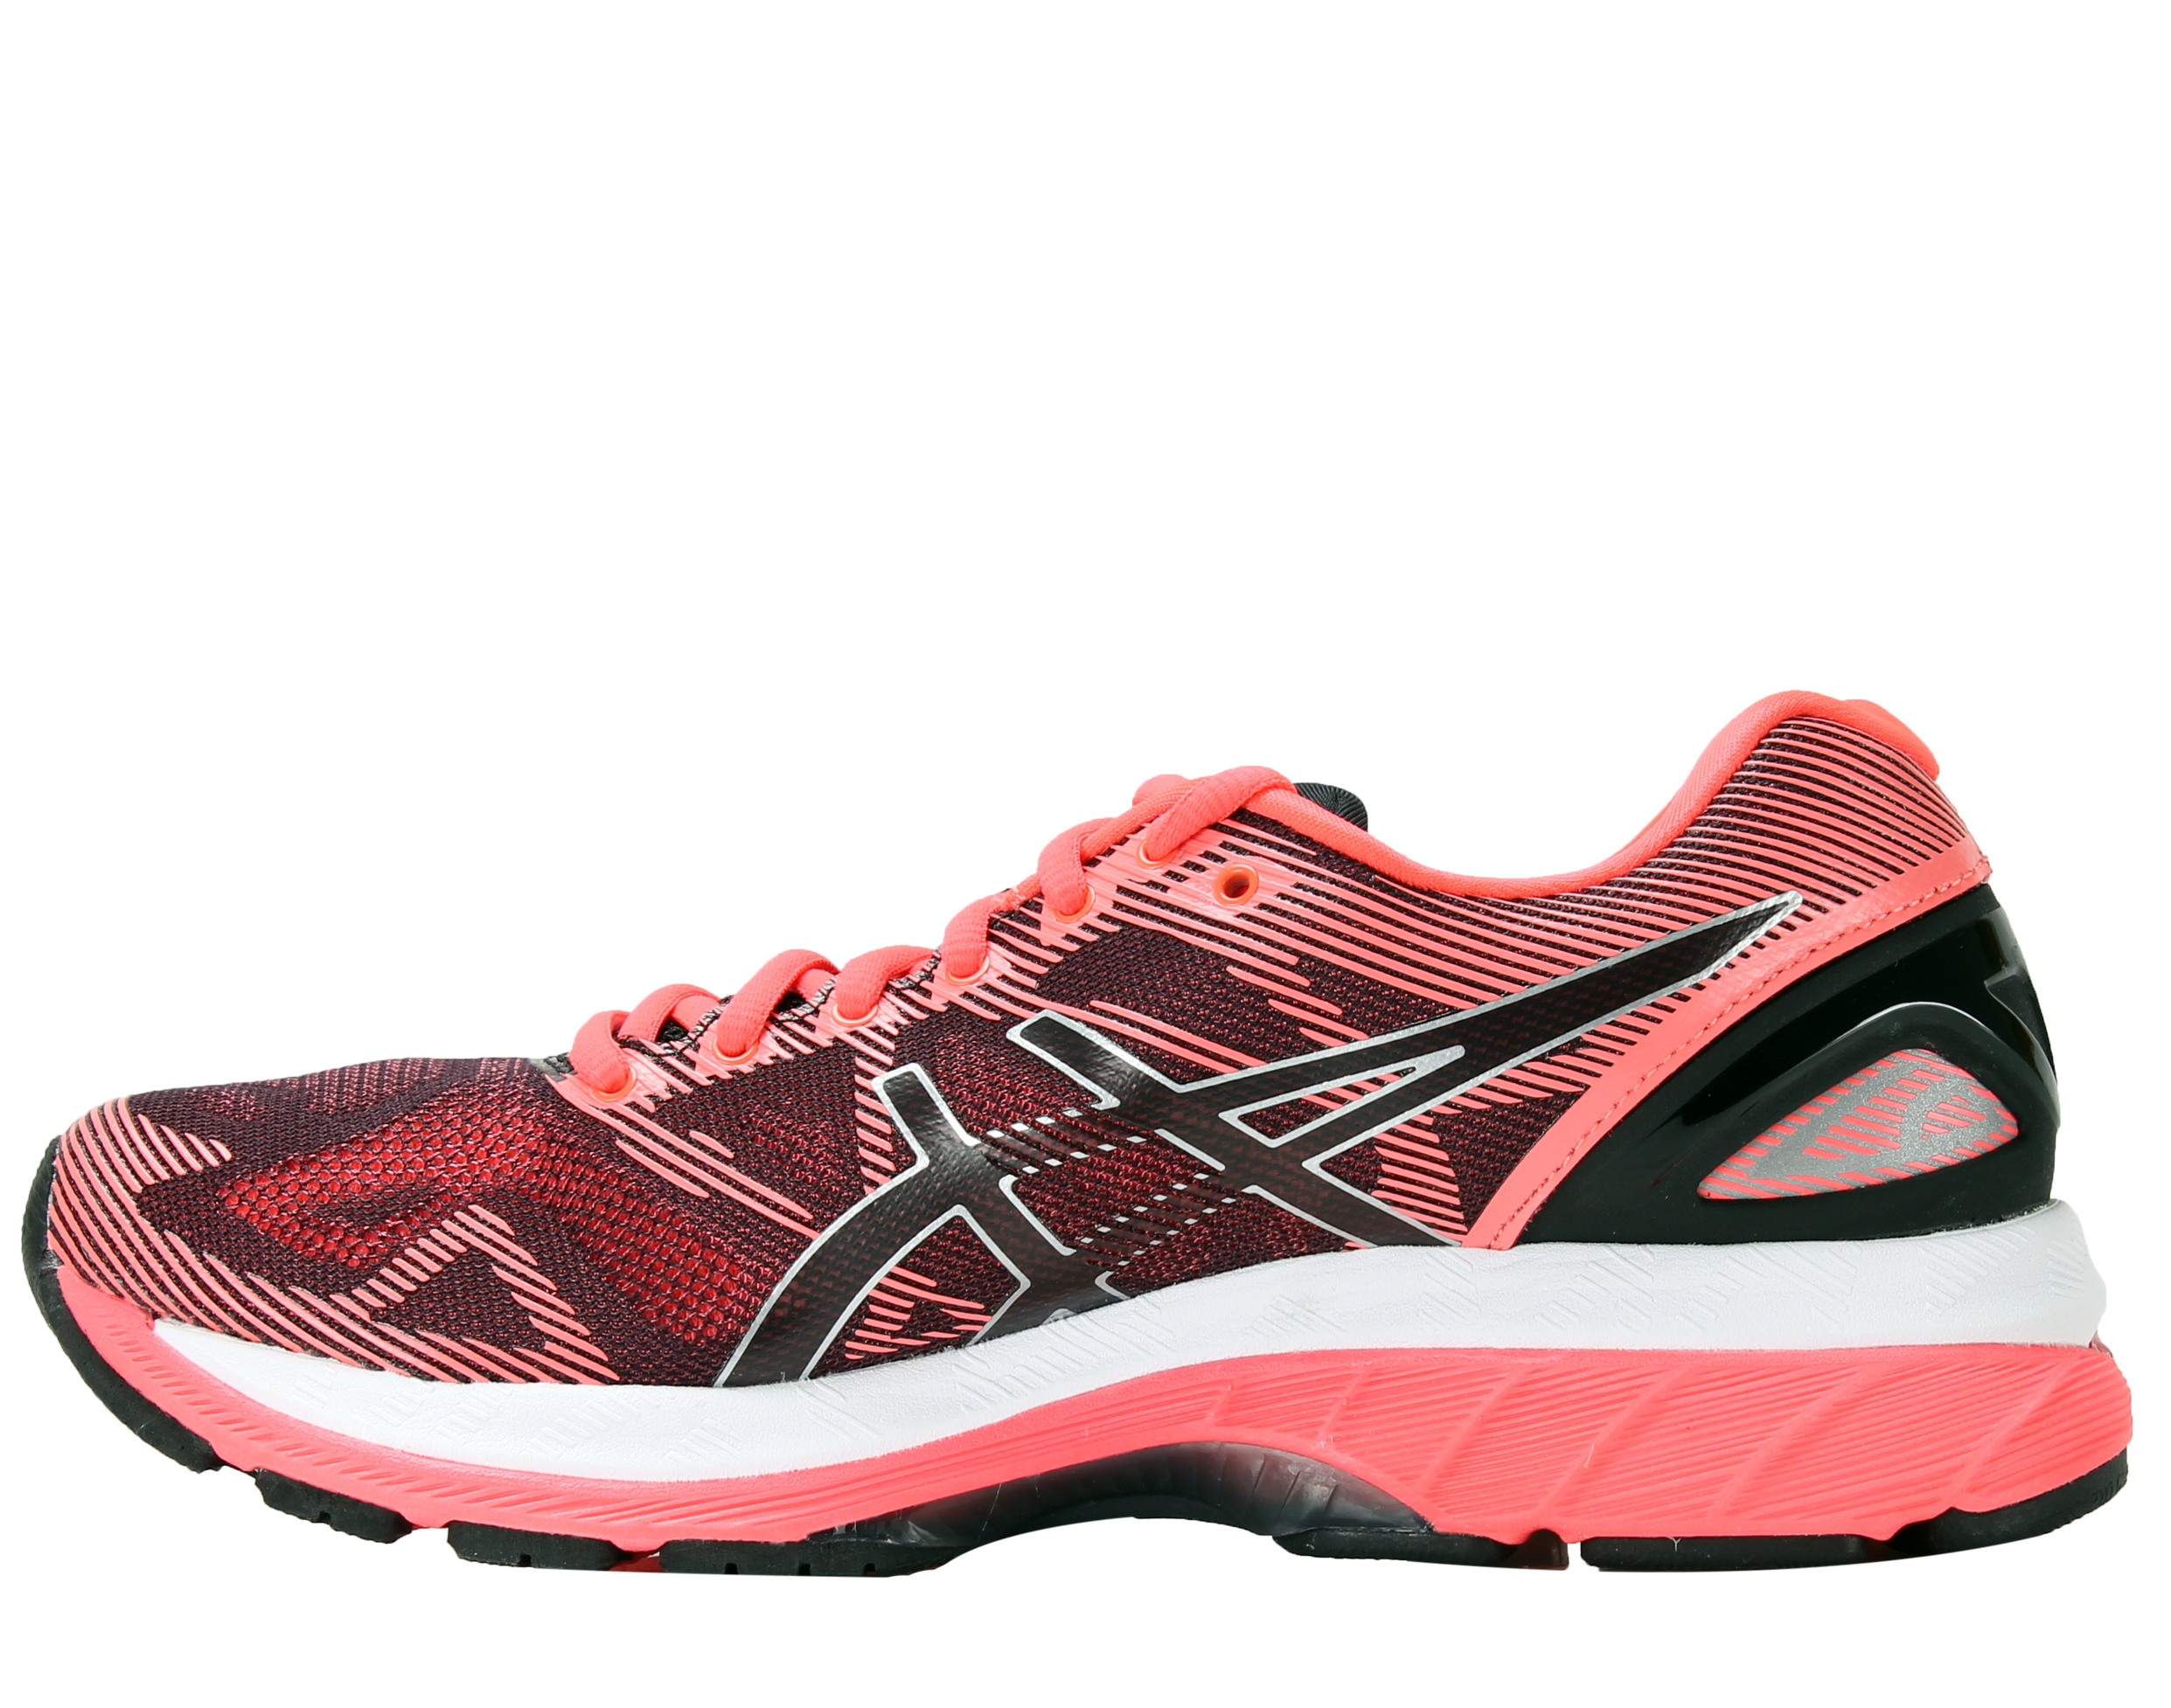 Asics Gel-Nimbus 19 Black/Silver/Diva Pink Women's Running Shoes T750N-9093  - Walmart.com